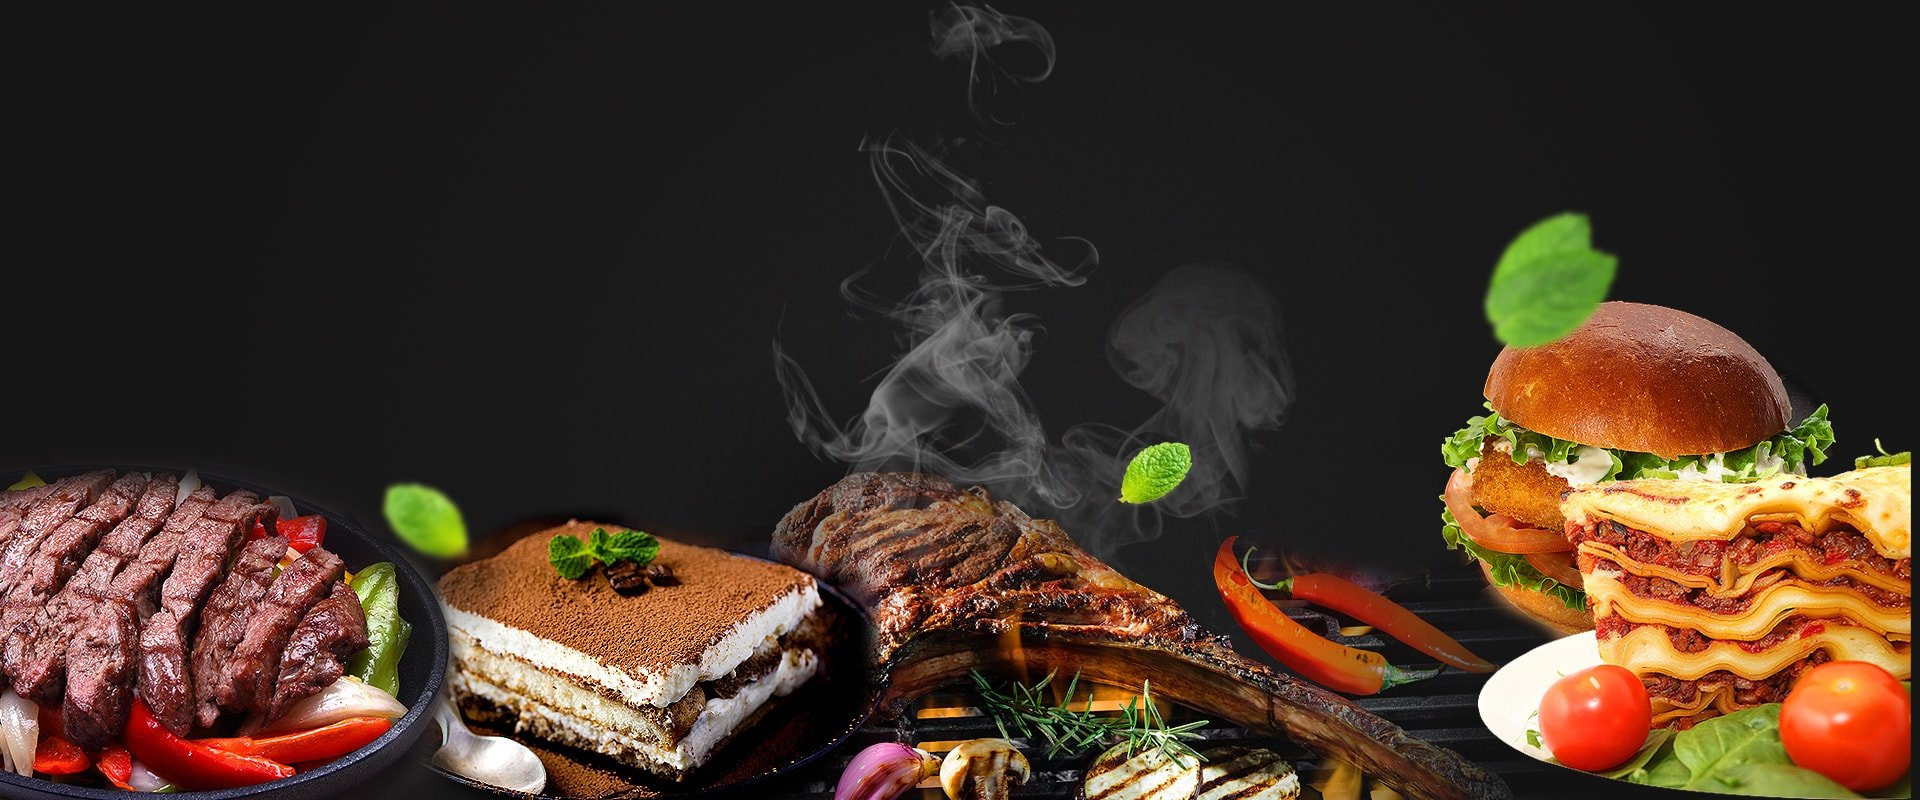 Grilled foods and sandwiches- A Tavola restaurant